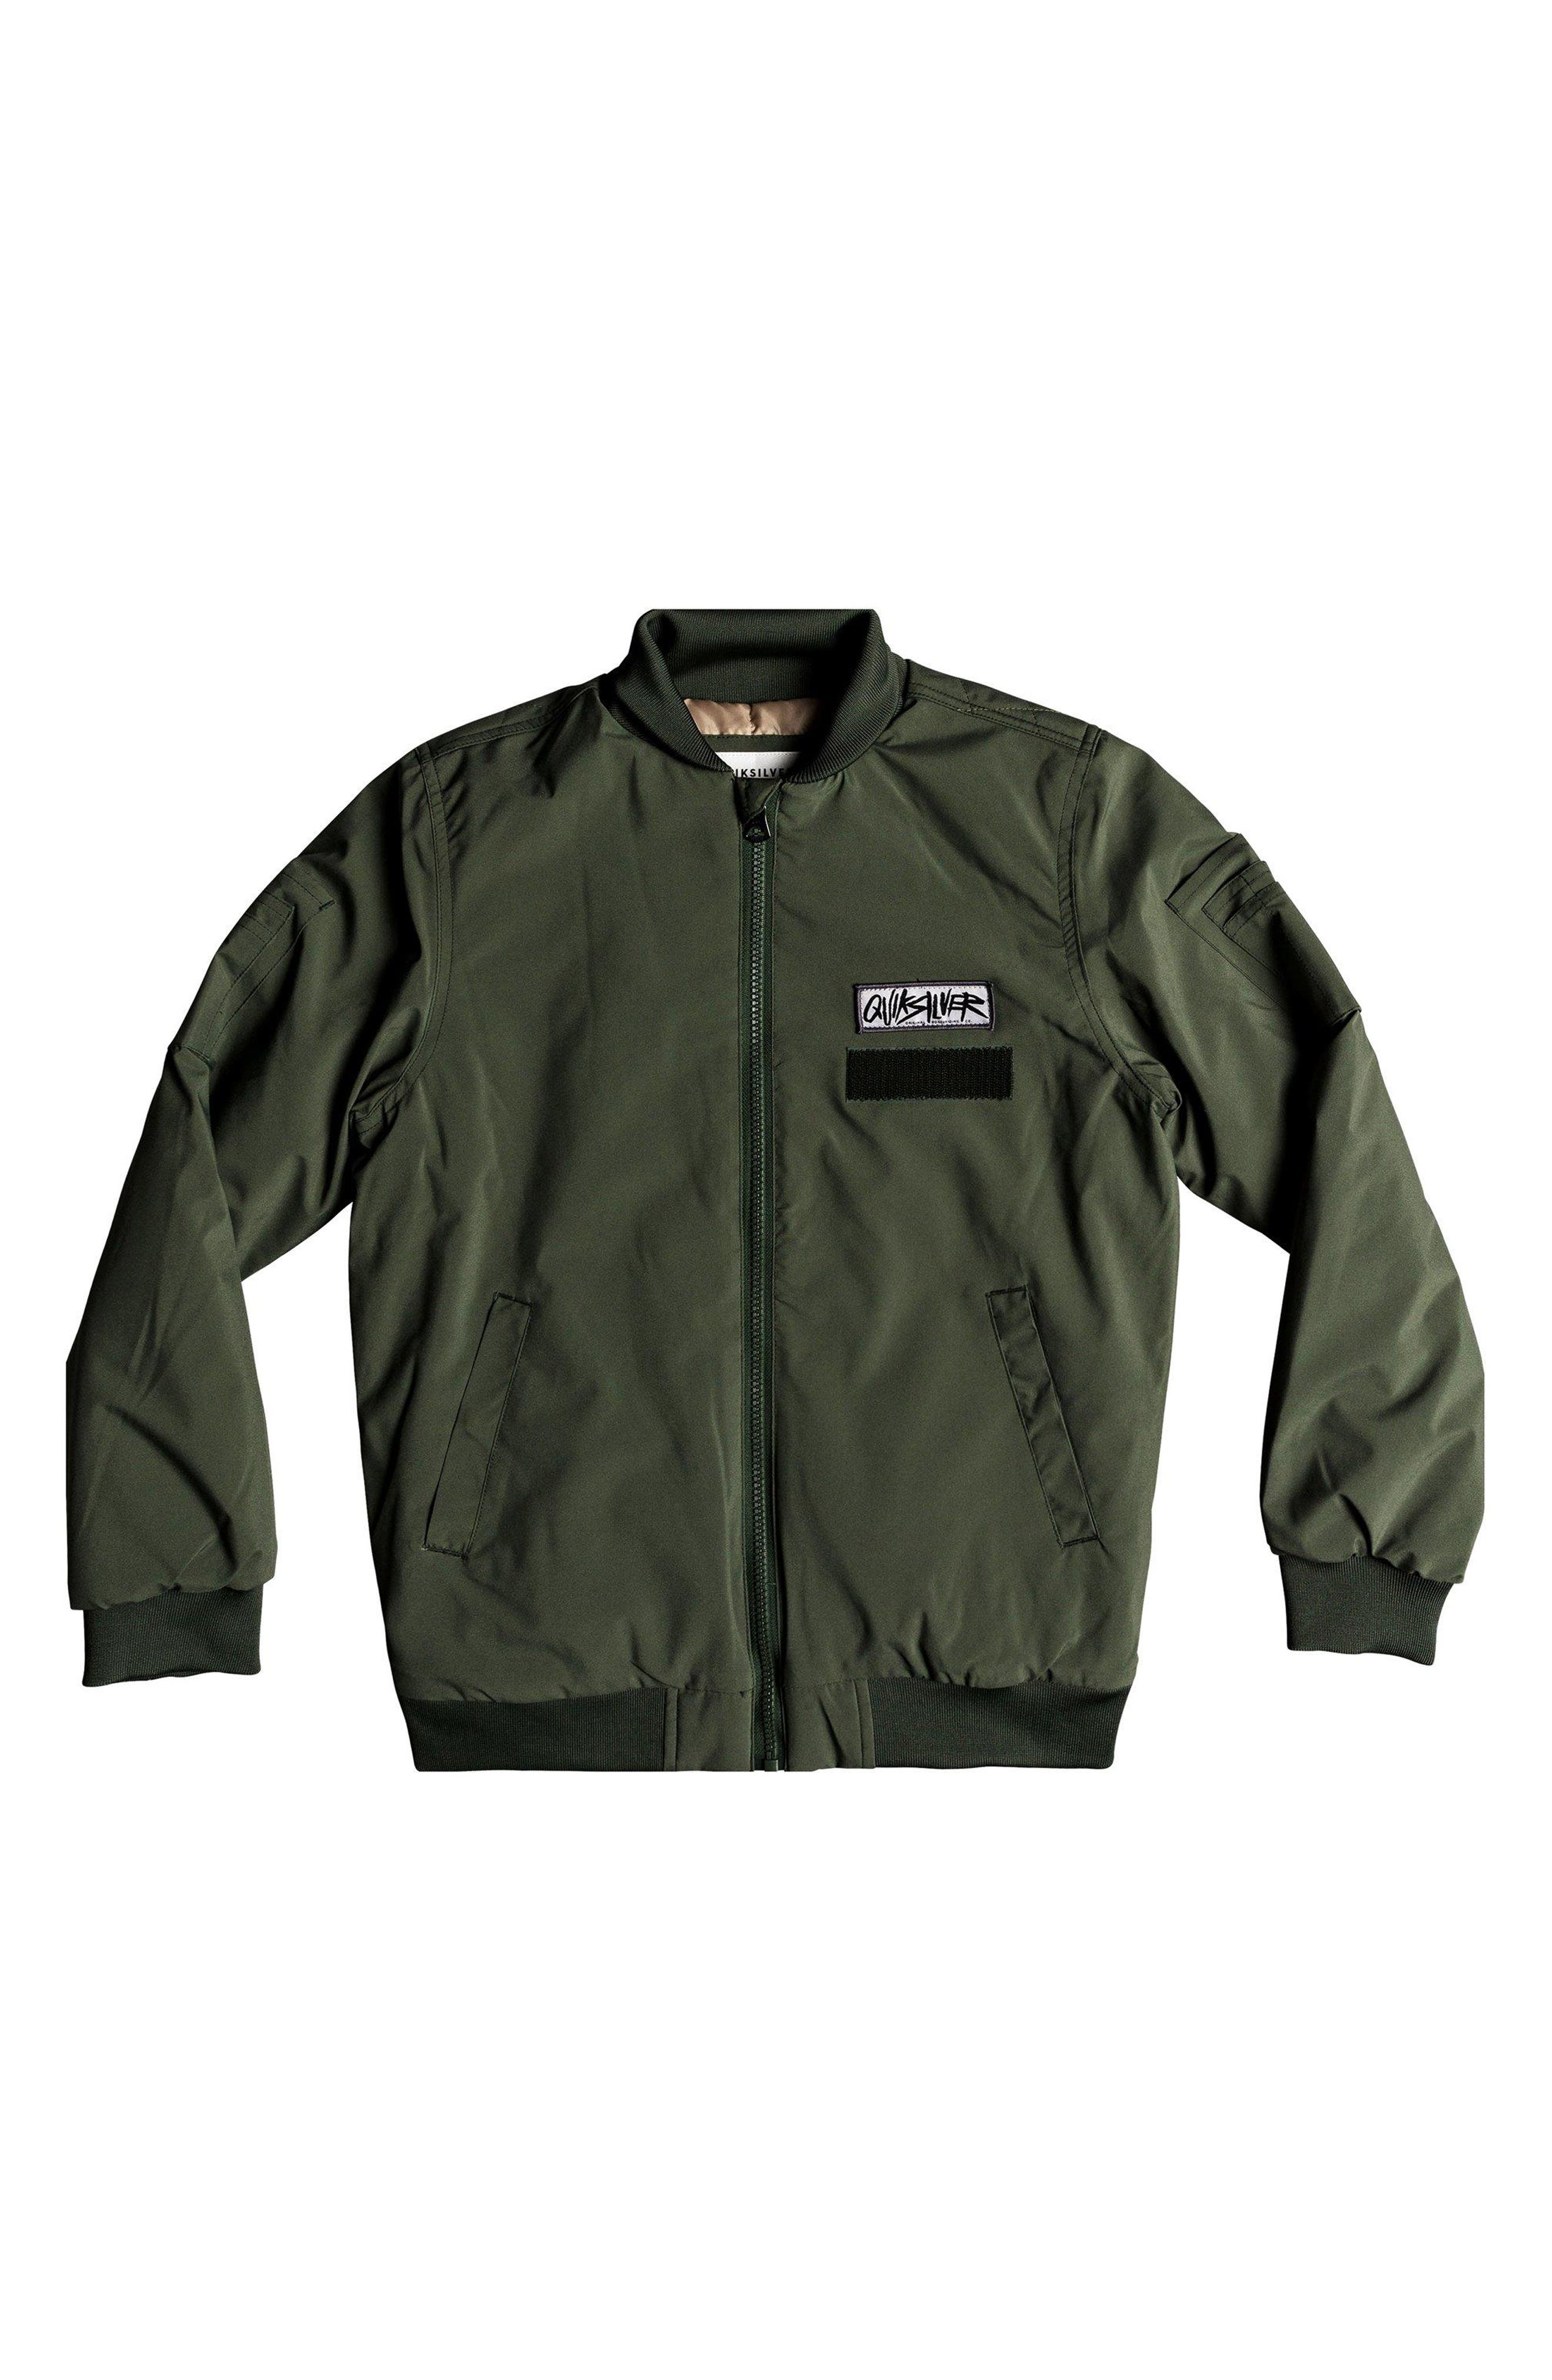 Mankai Sun Bomber Jacket,                             Main thumbnail 1, color,                             THYME